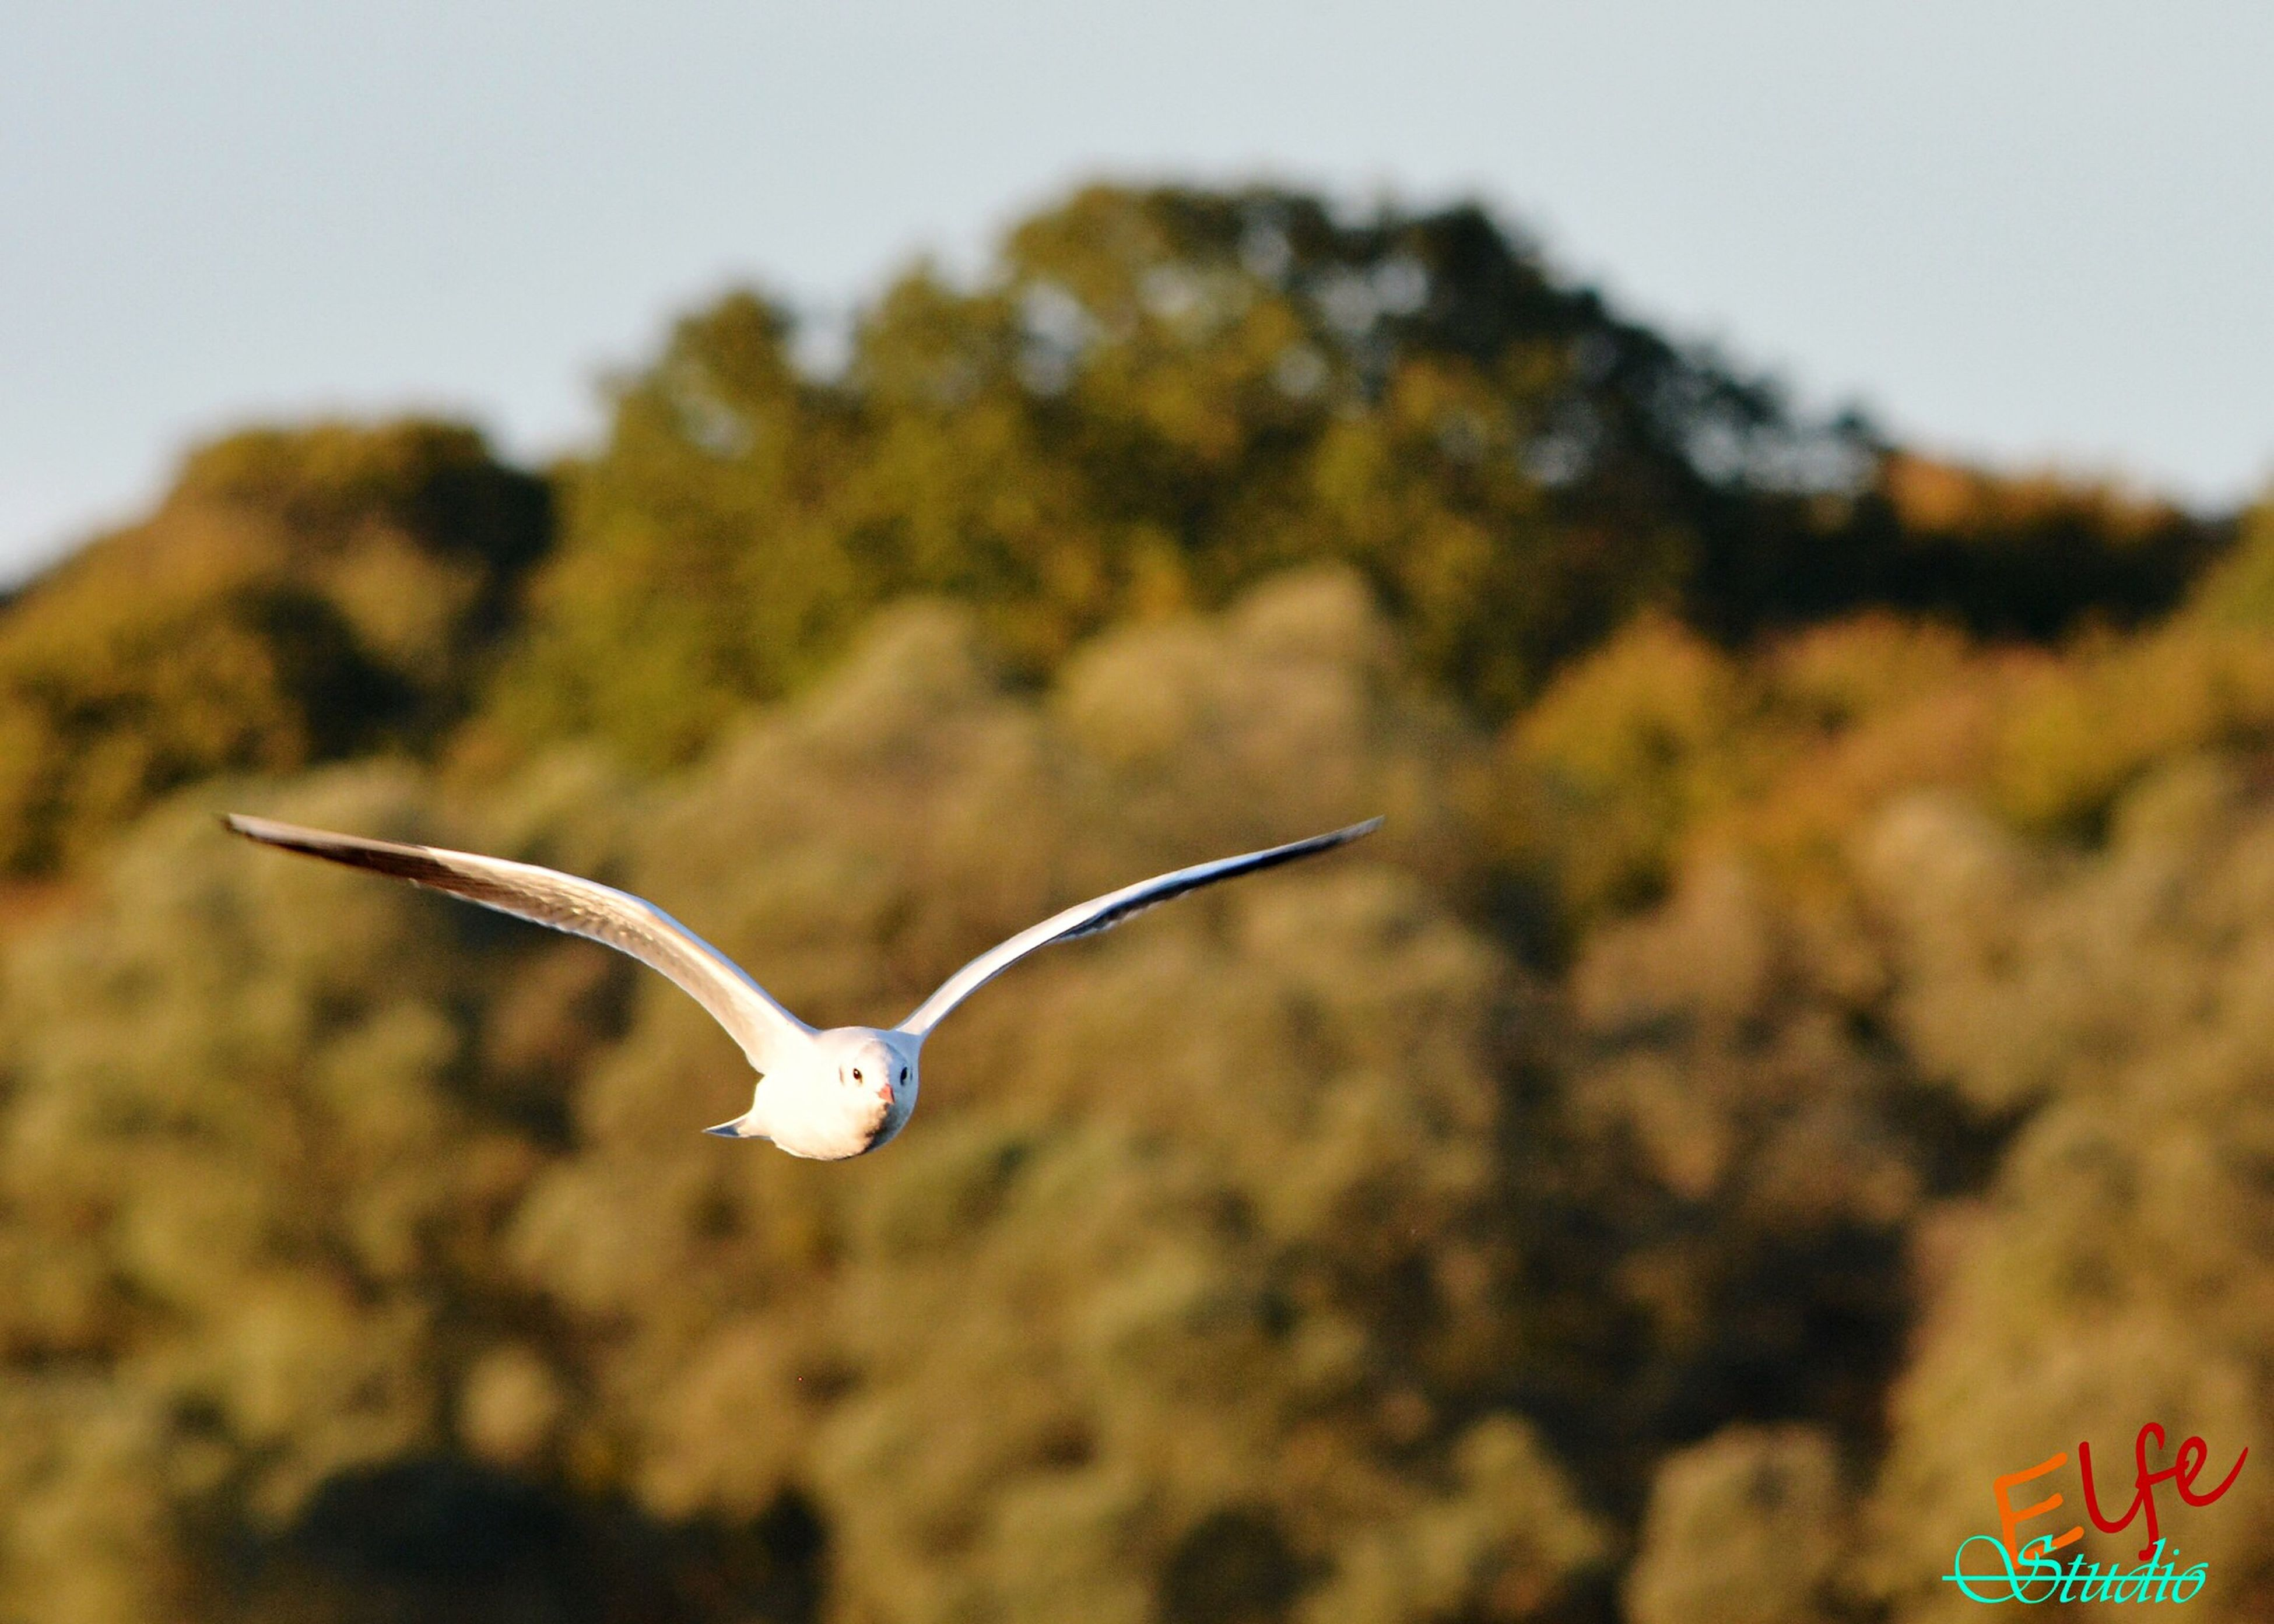 flying, mid-air, animal themes, animals in the wild, one animal, spread wings, wildlife, bird, focus on foreground, motion, selective focus, on the move, full length, seagull, animal wing, insect, nature, day, outdoors, close-up